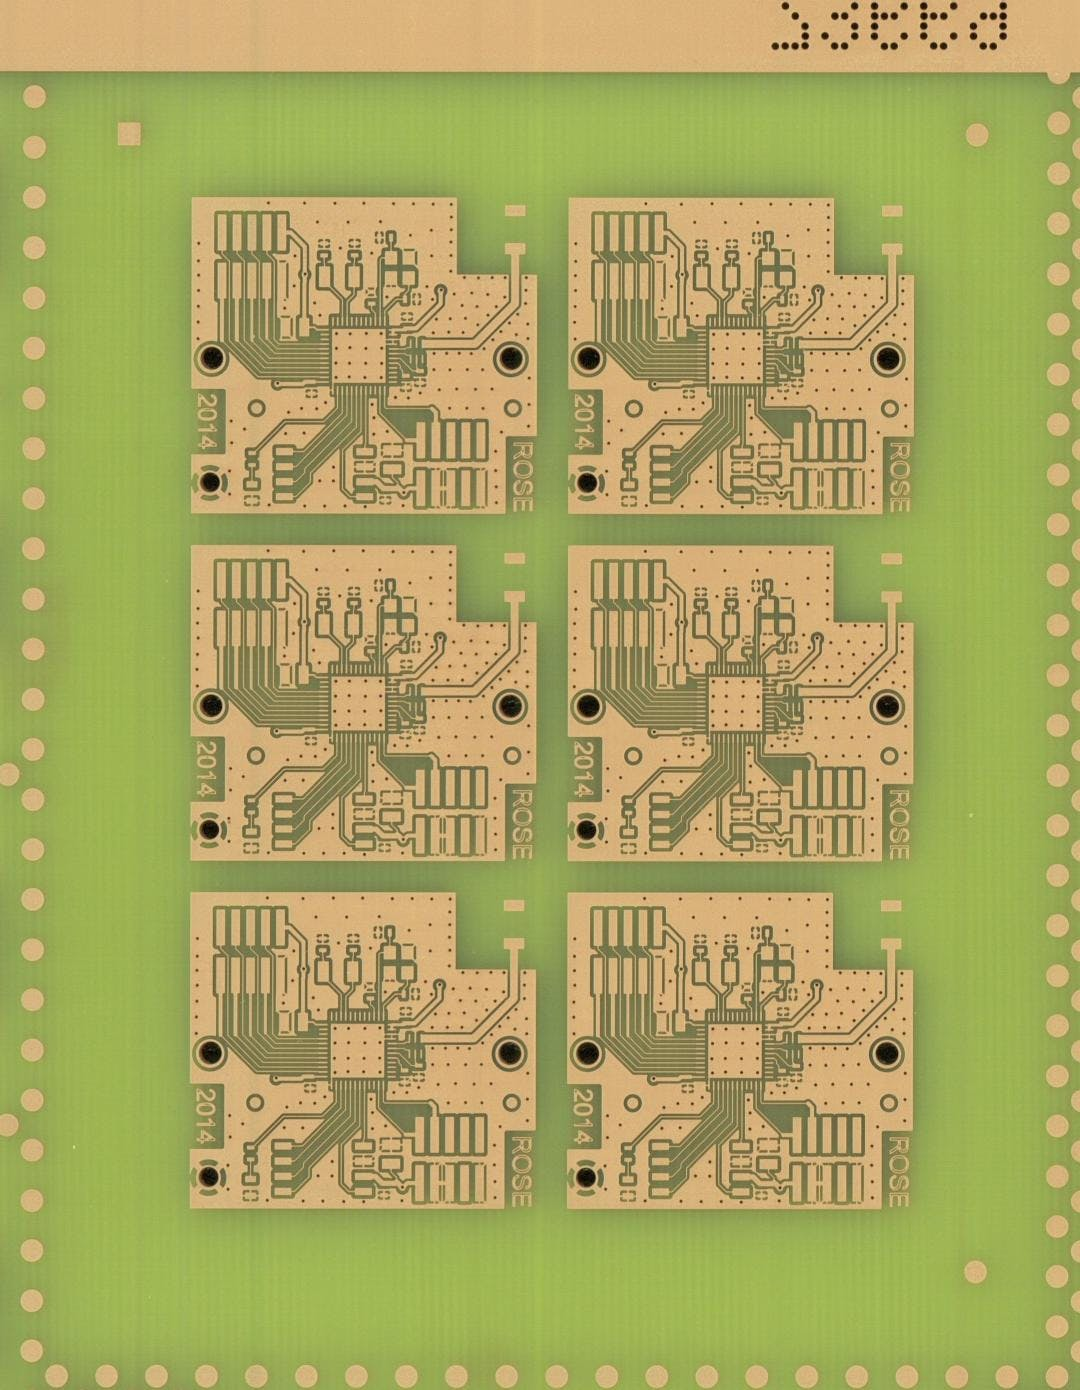 PCB production